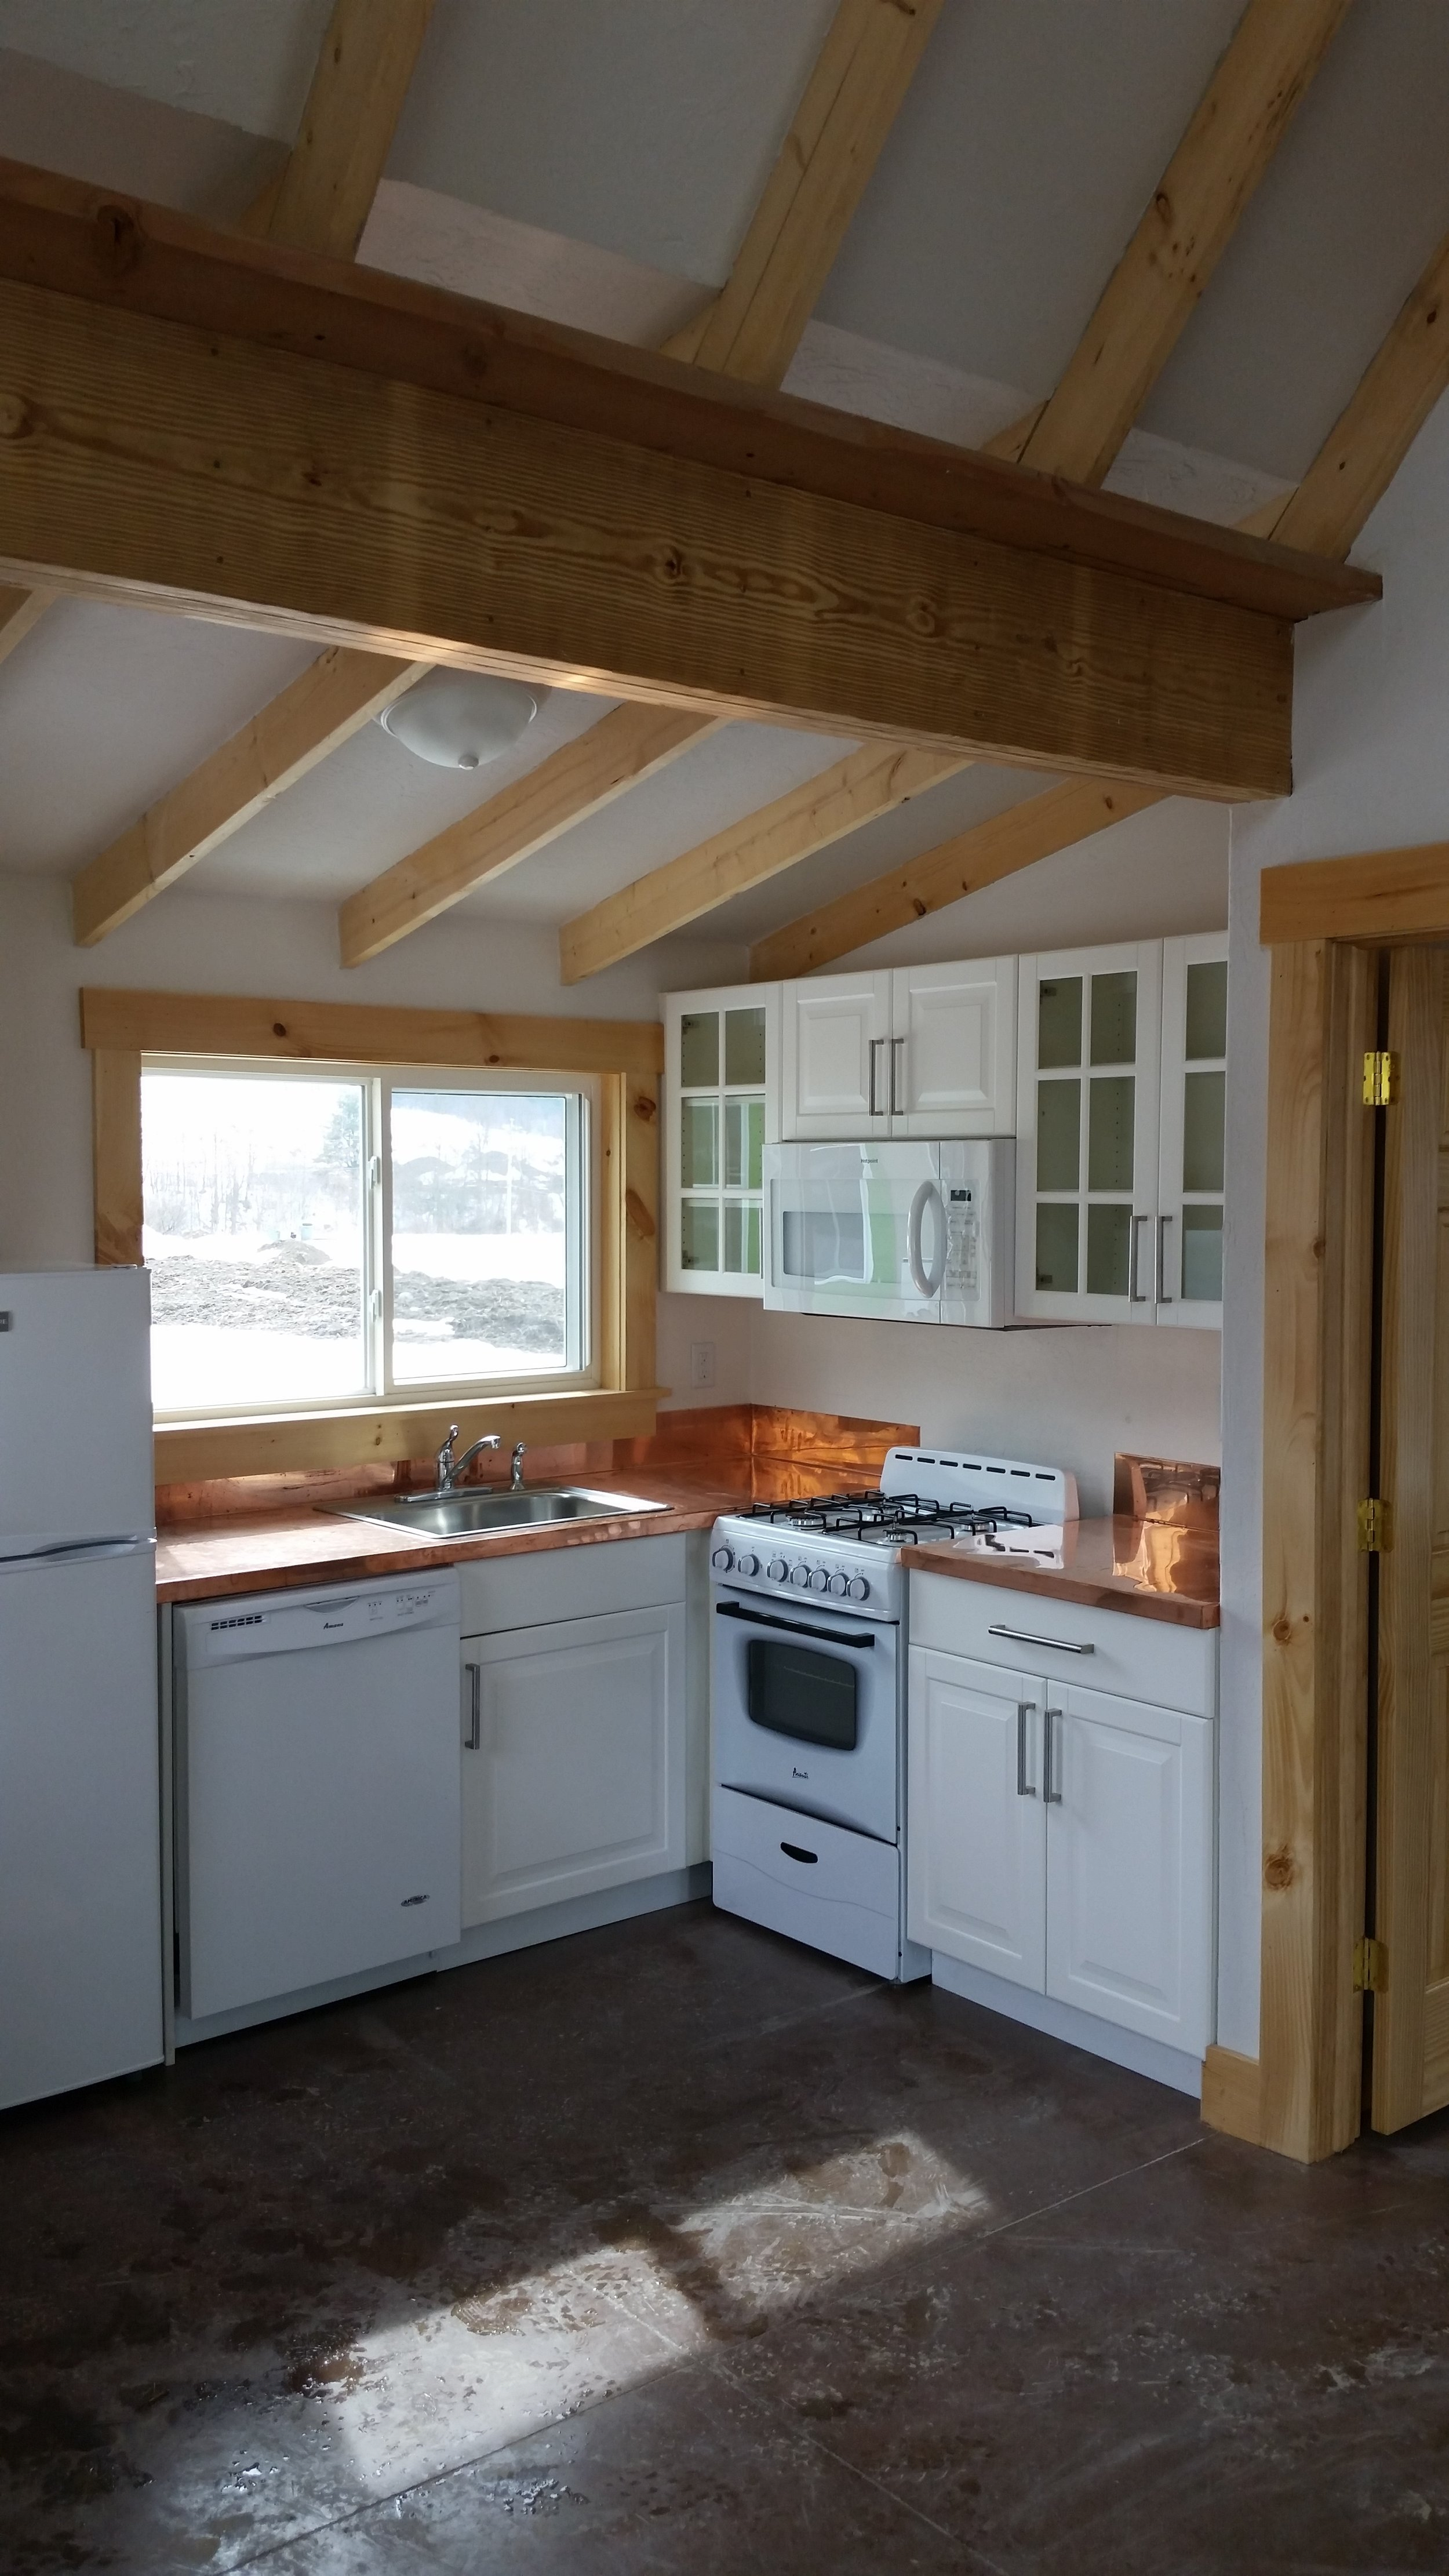 Fausel-Imagery-Kitchen.jpg